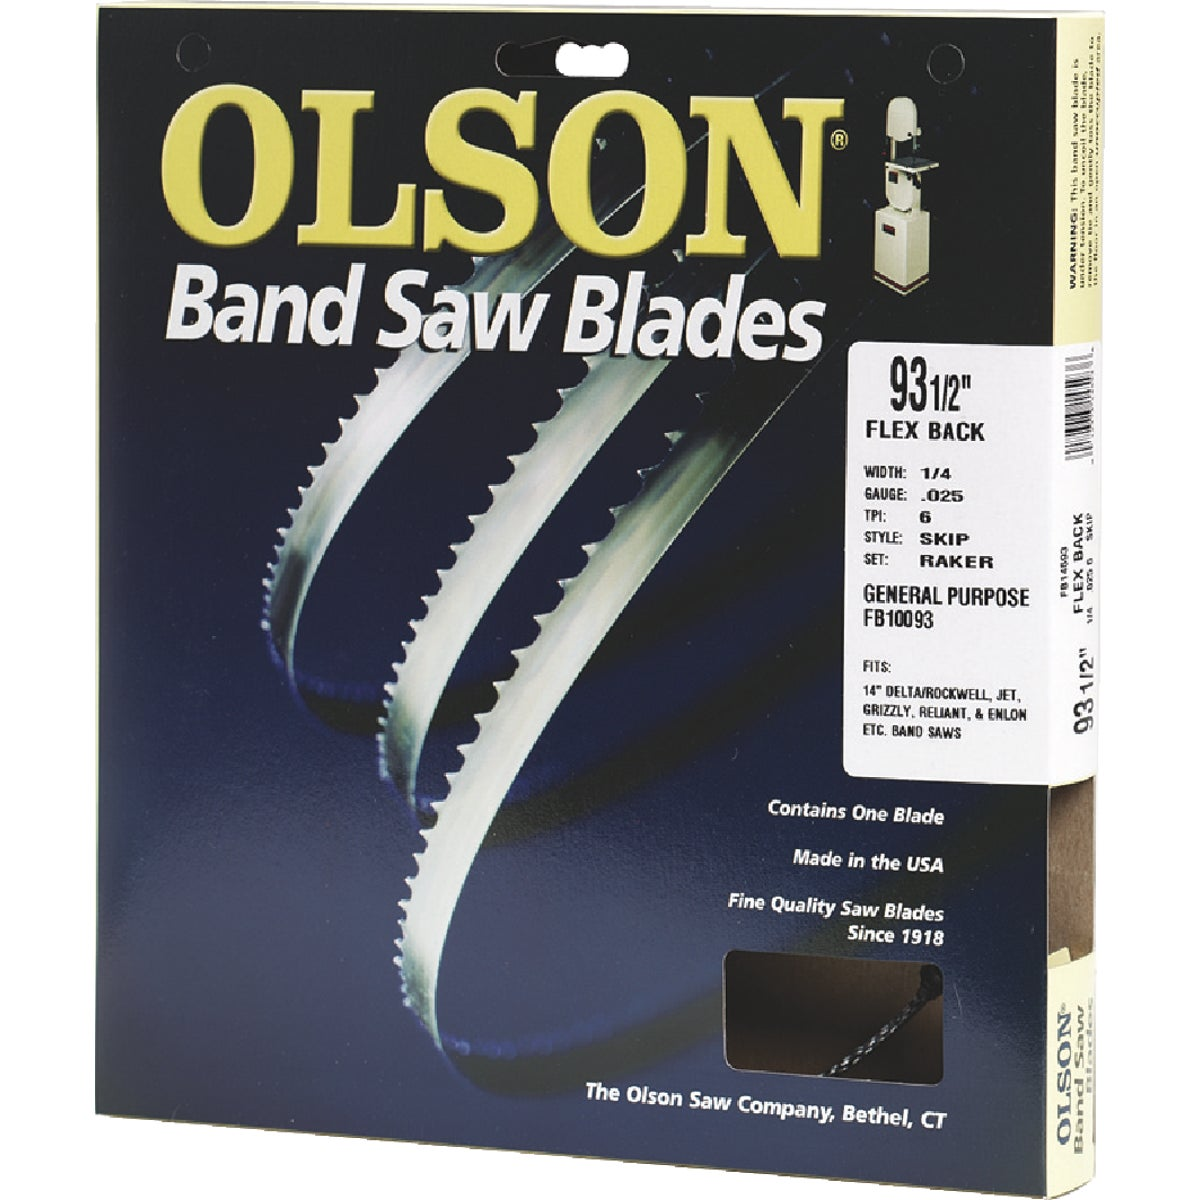 "93-1/2"" BANDSAW BLADE - 23193 by Olson Saw Co"